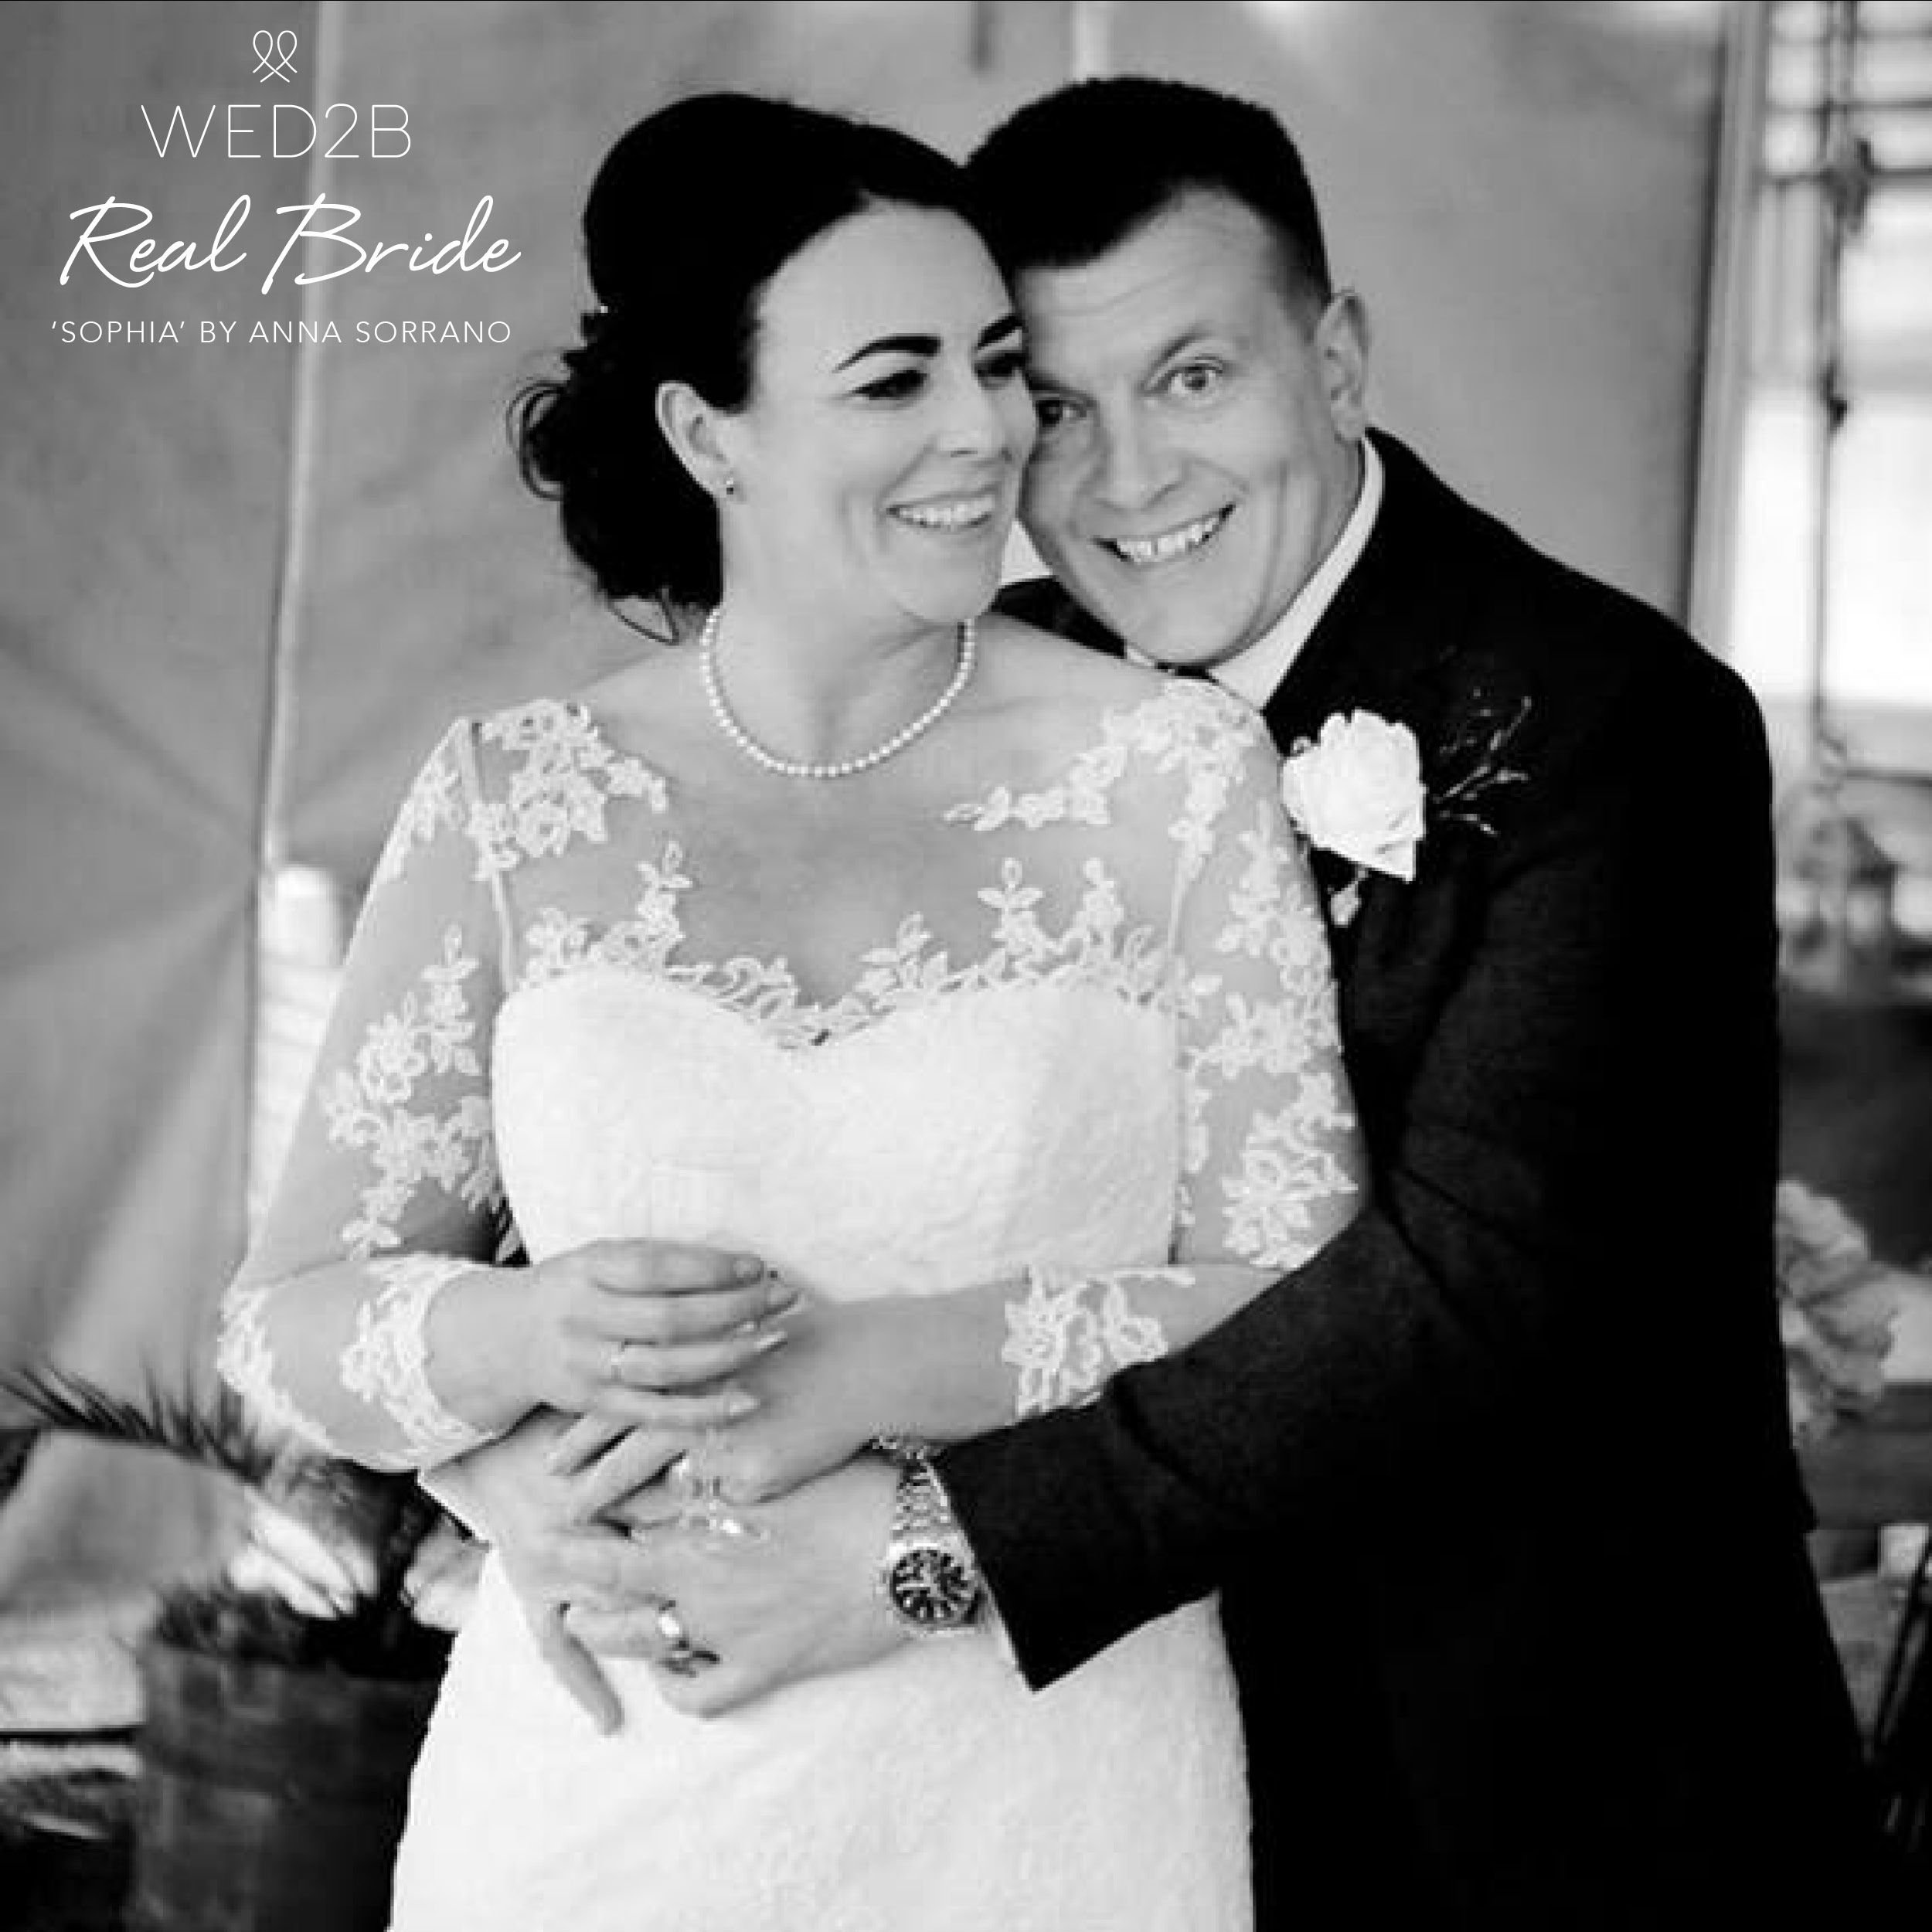 Real Brides Wed2b: A Beautiful Photo Of Real Bride Emma In 'Sophia' By Anna